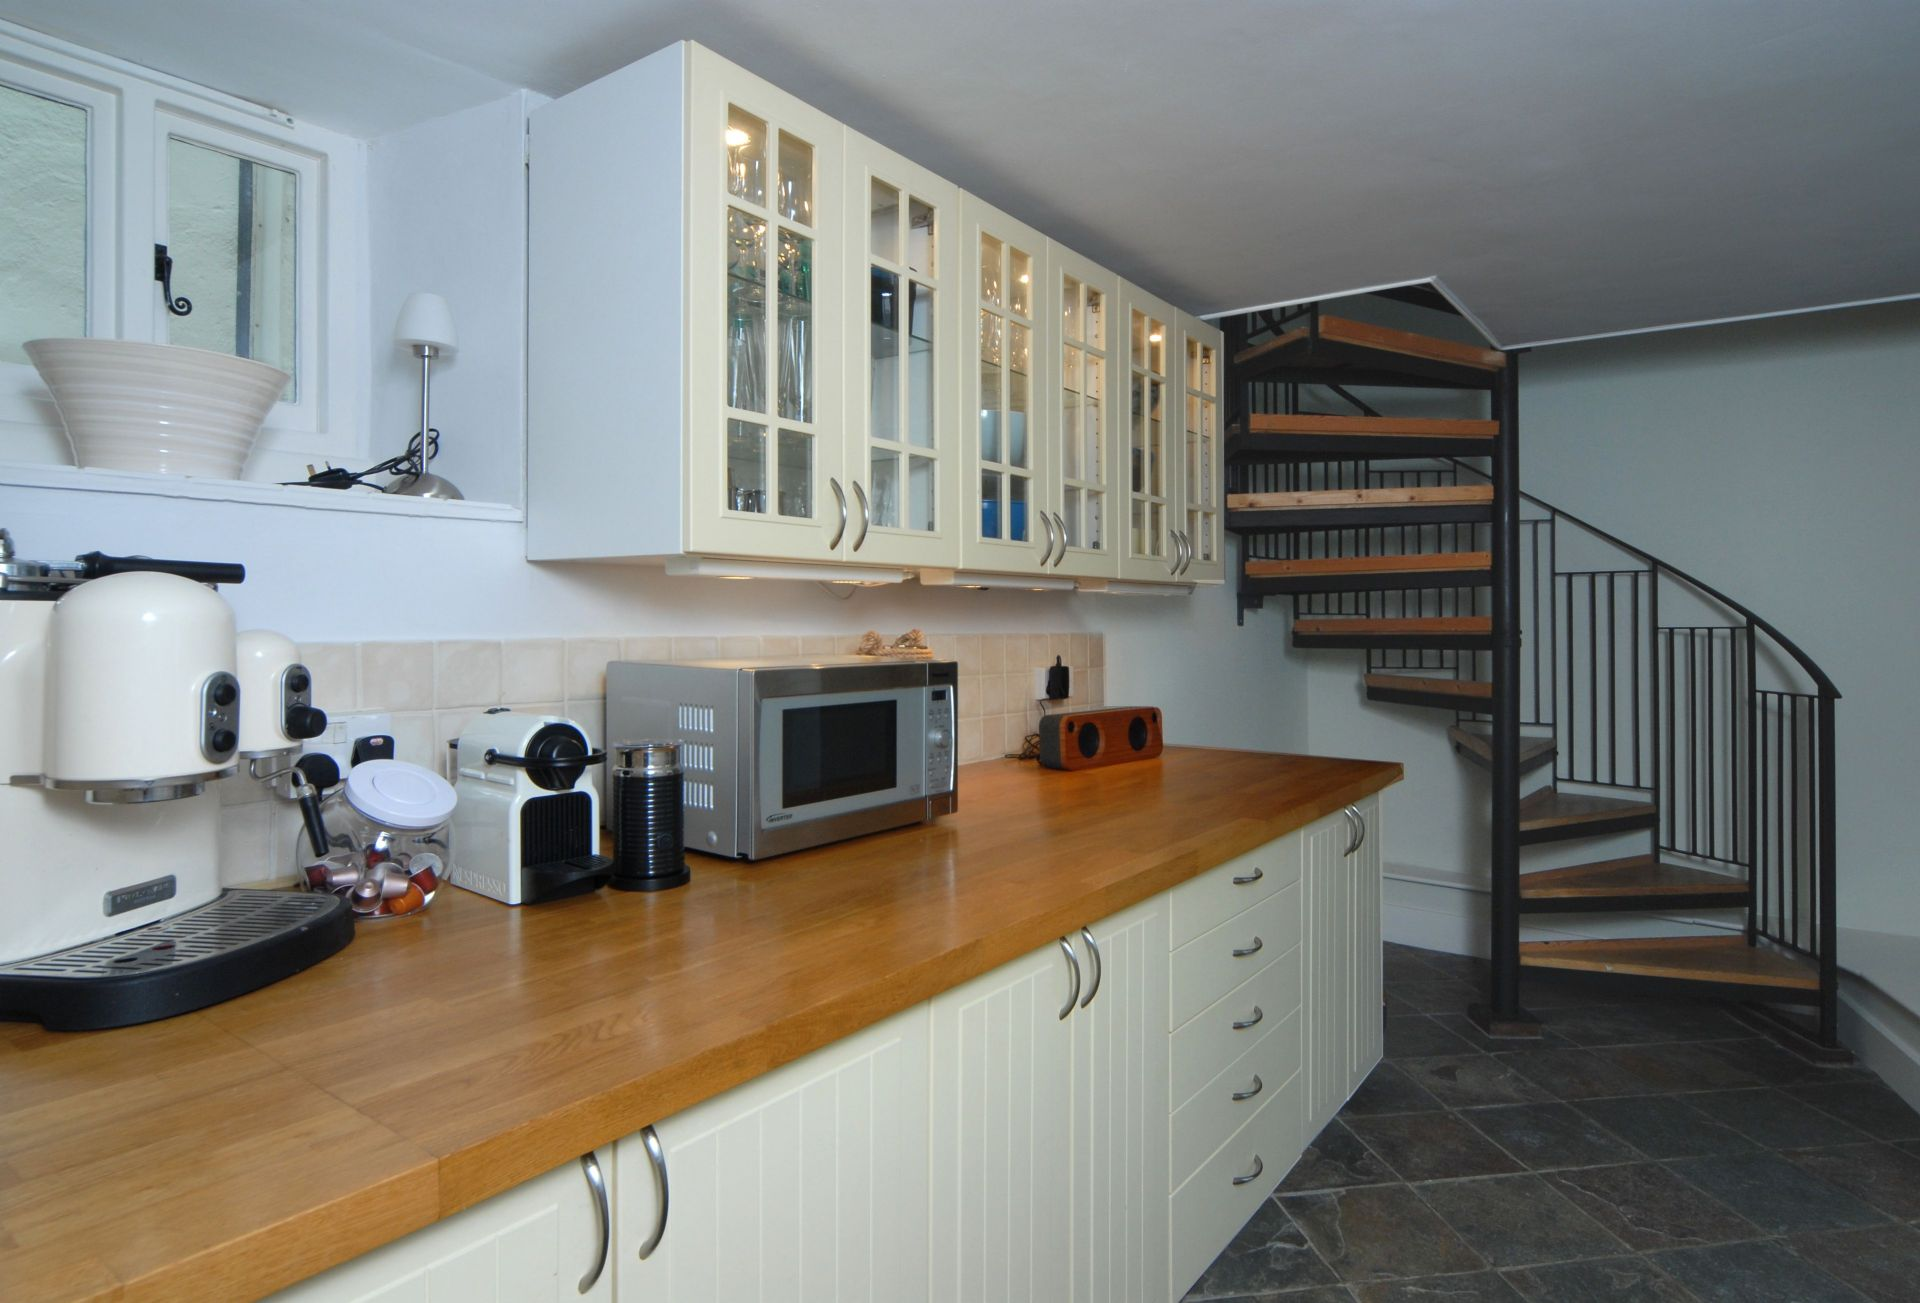 Ground floor: Kitchen with spiral staircase leading to the first floor